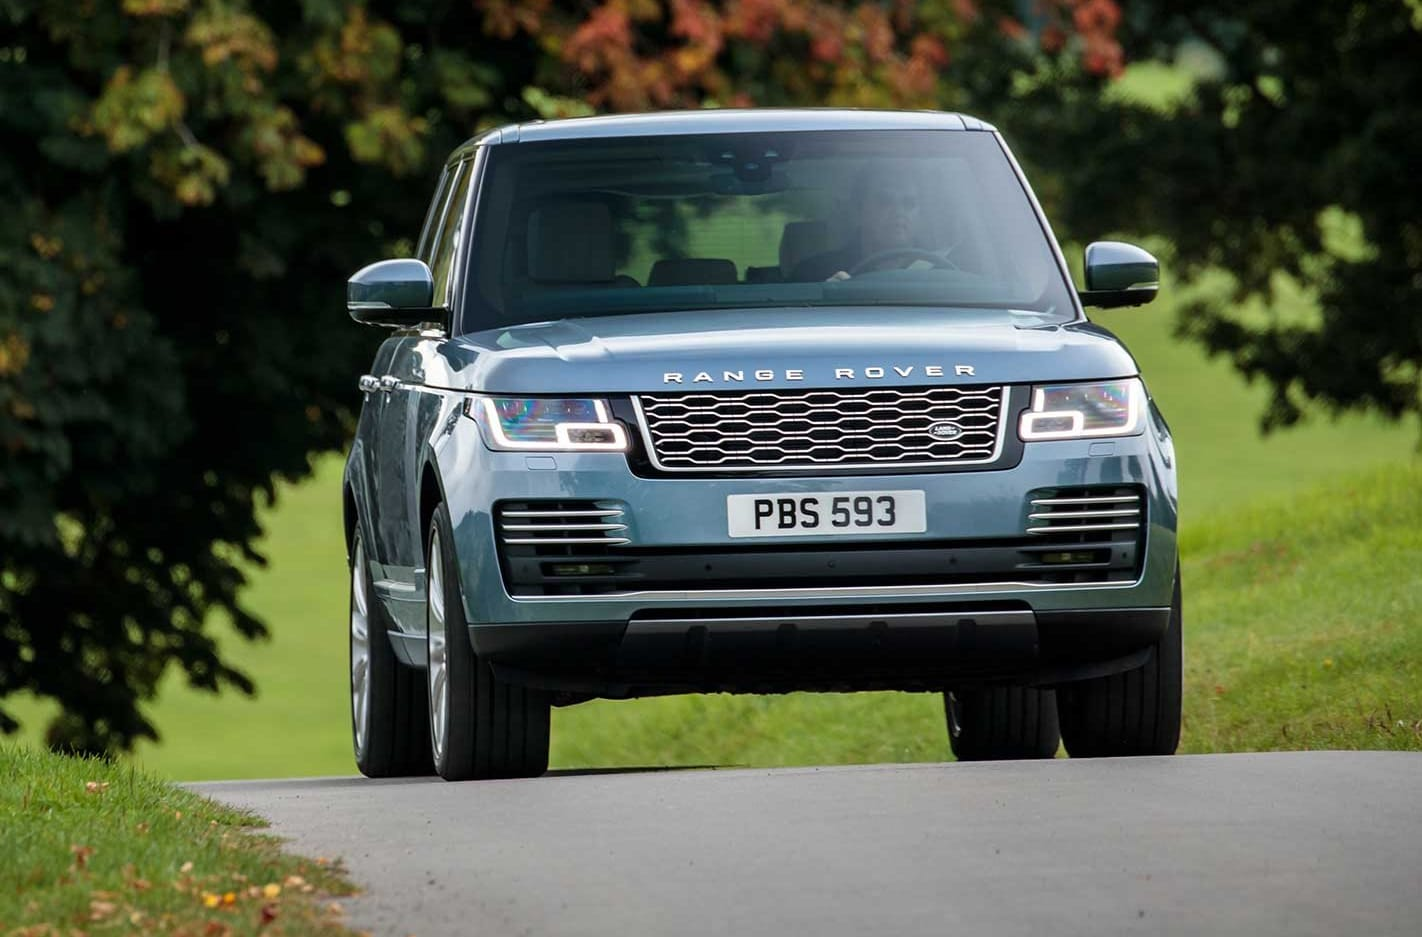 2018 Range Rover SDV8 Autobiography quick performance review